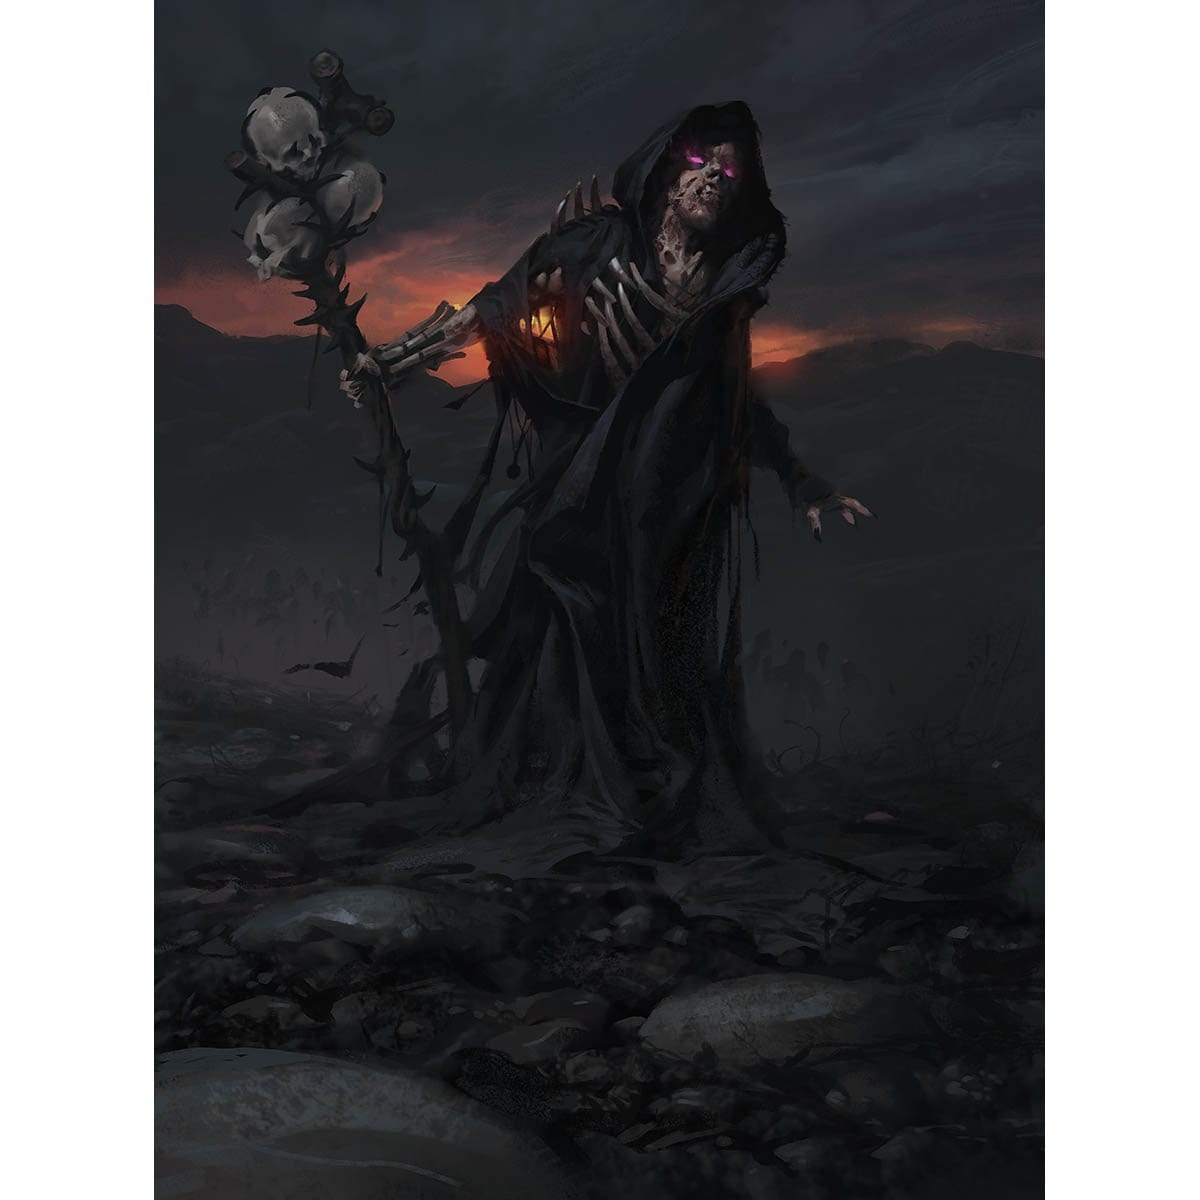 Death Baron Print - Print - Original Magic Art - Accessories for Magic the Gathering and other card games